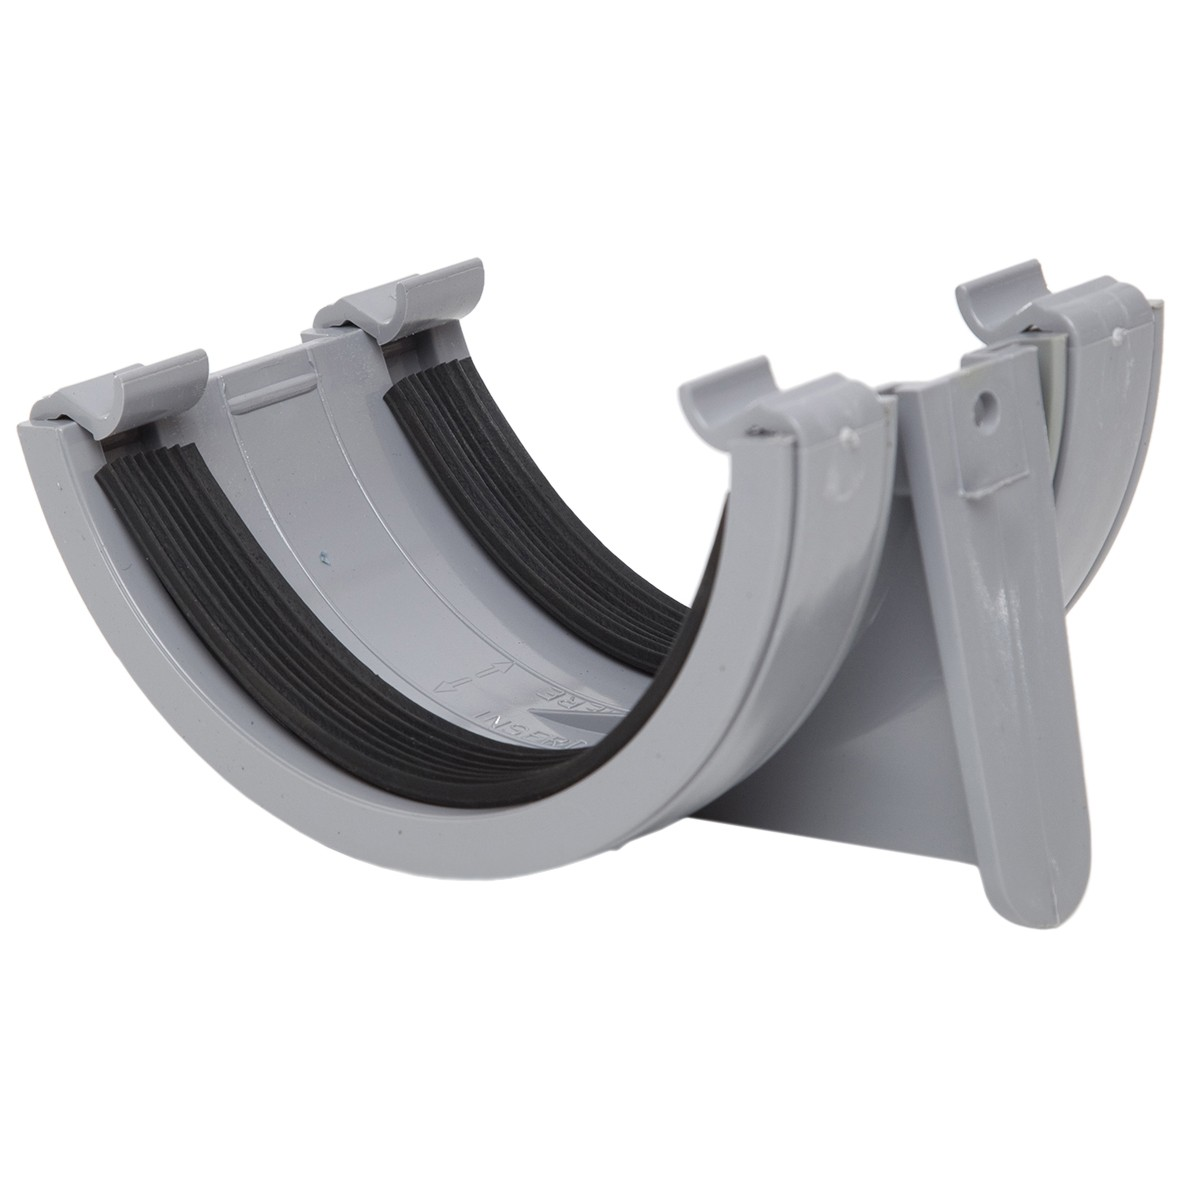 Polypipe 112mm Half Round Gutter Union Bracket - Grey